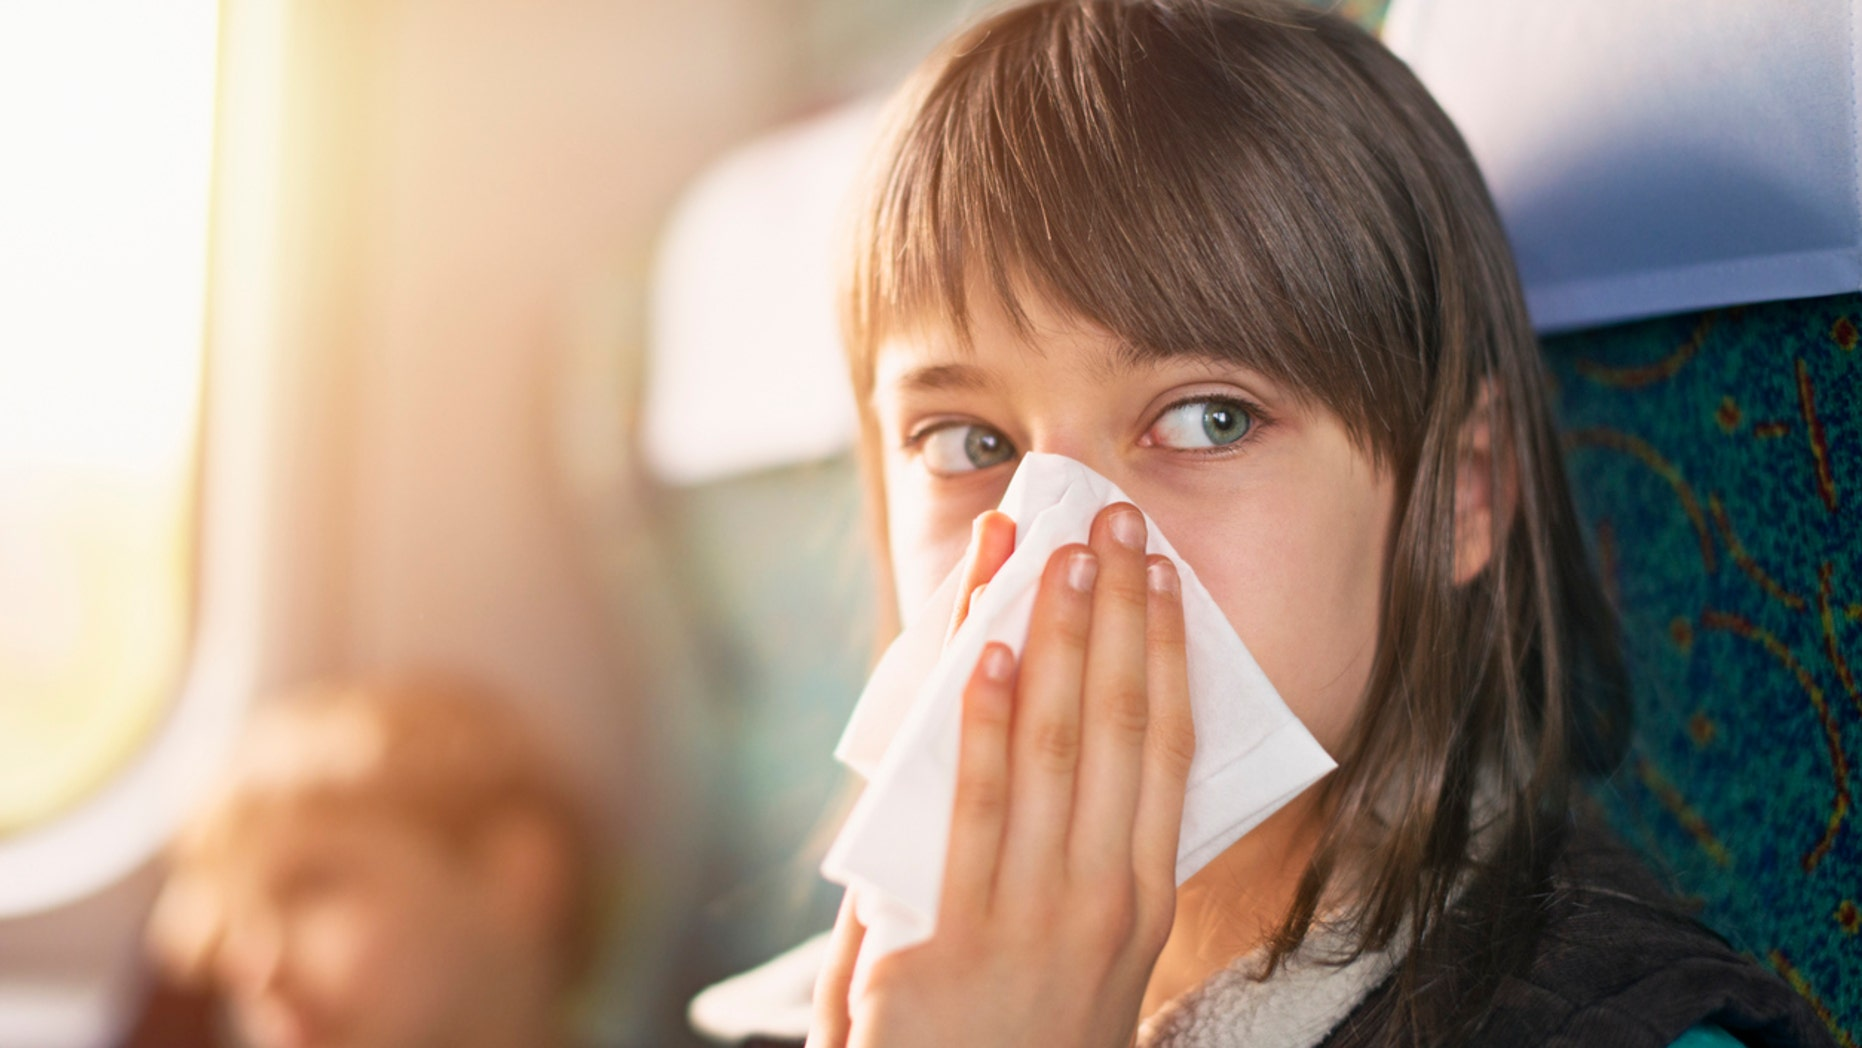 """For somebody who doesn't want to get sick, """"get in that window seat and don't move,"""" the study's lead researcher said."""